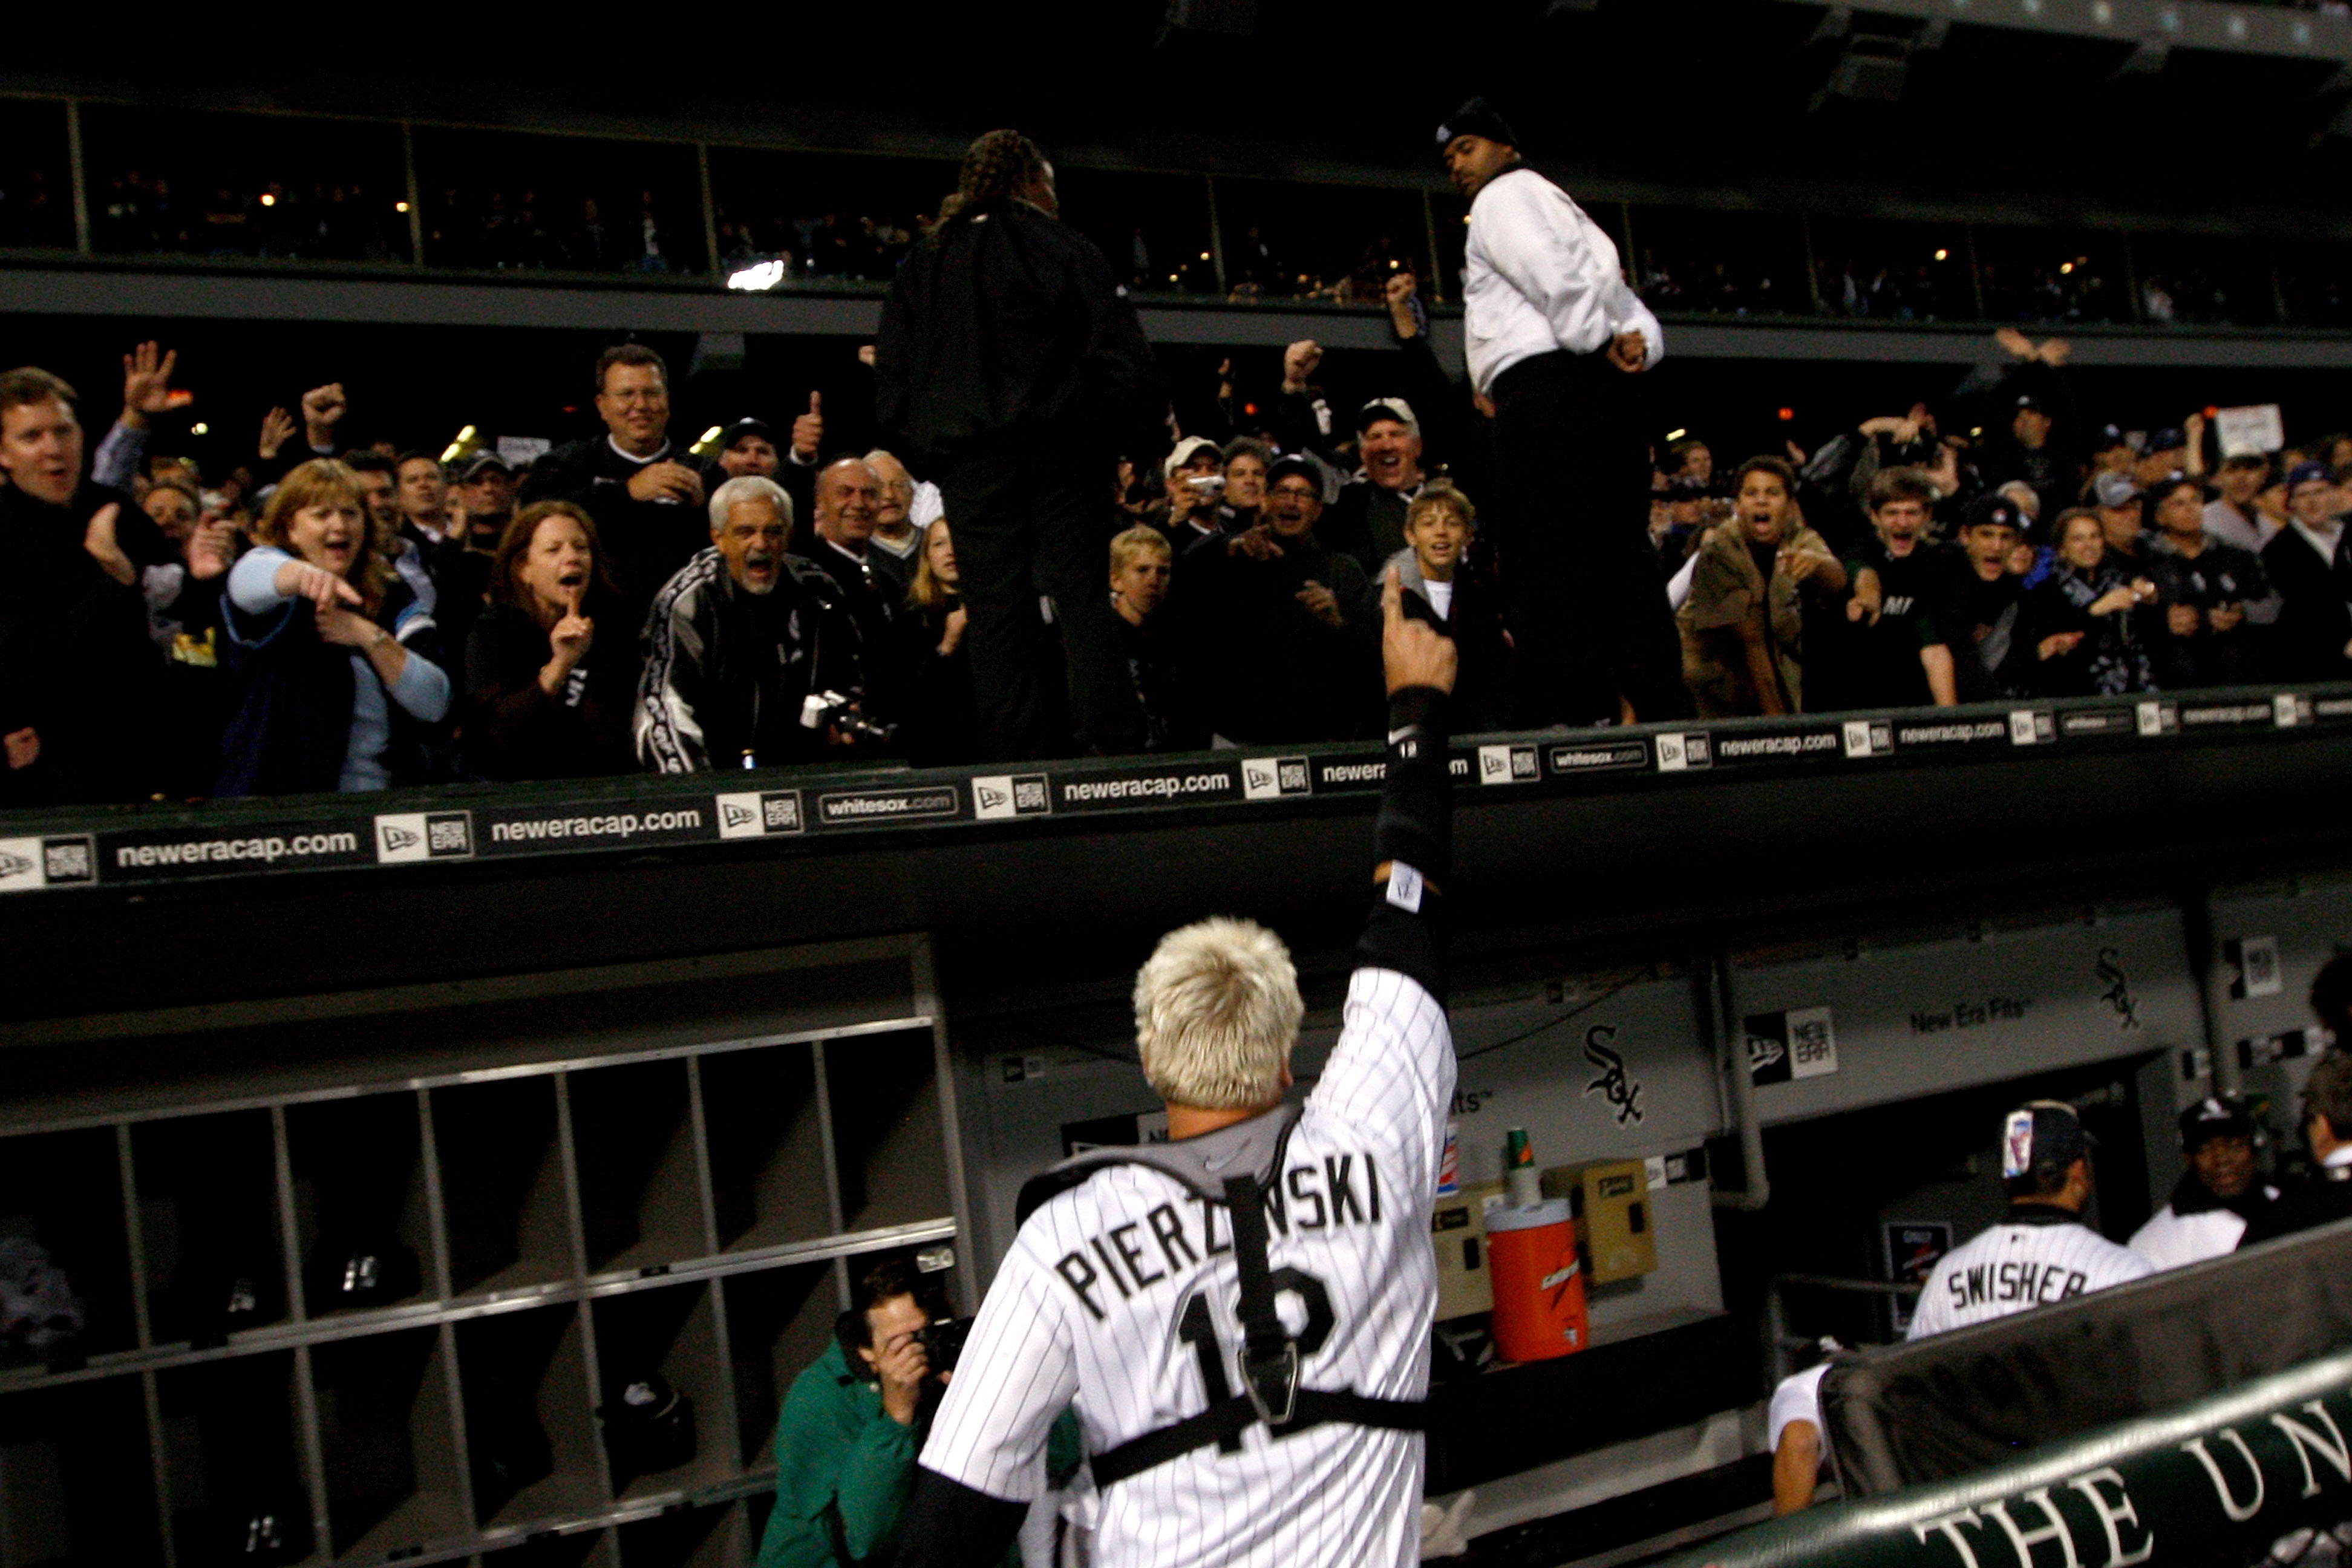 CHICAGO - SEPTEMBER 30:  Catcher A.J. Pierzynski #12 of the Chicago White Sox acknowledges the fans as he celebrates their 1-0 win against the Minnesota Twins during the American League Central Division Tiebreaker game at U.S. Cellular Field on September